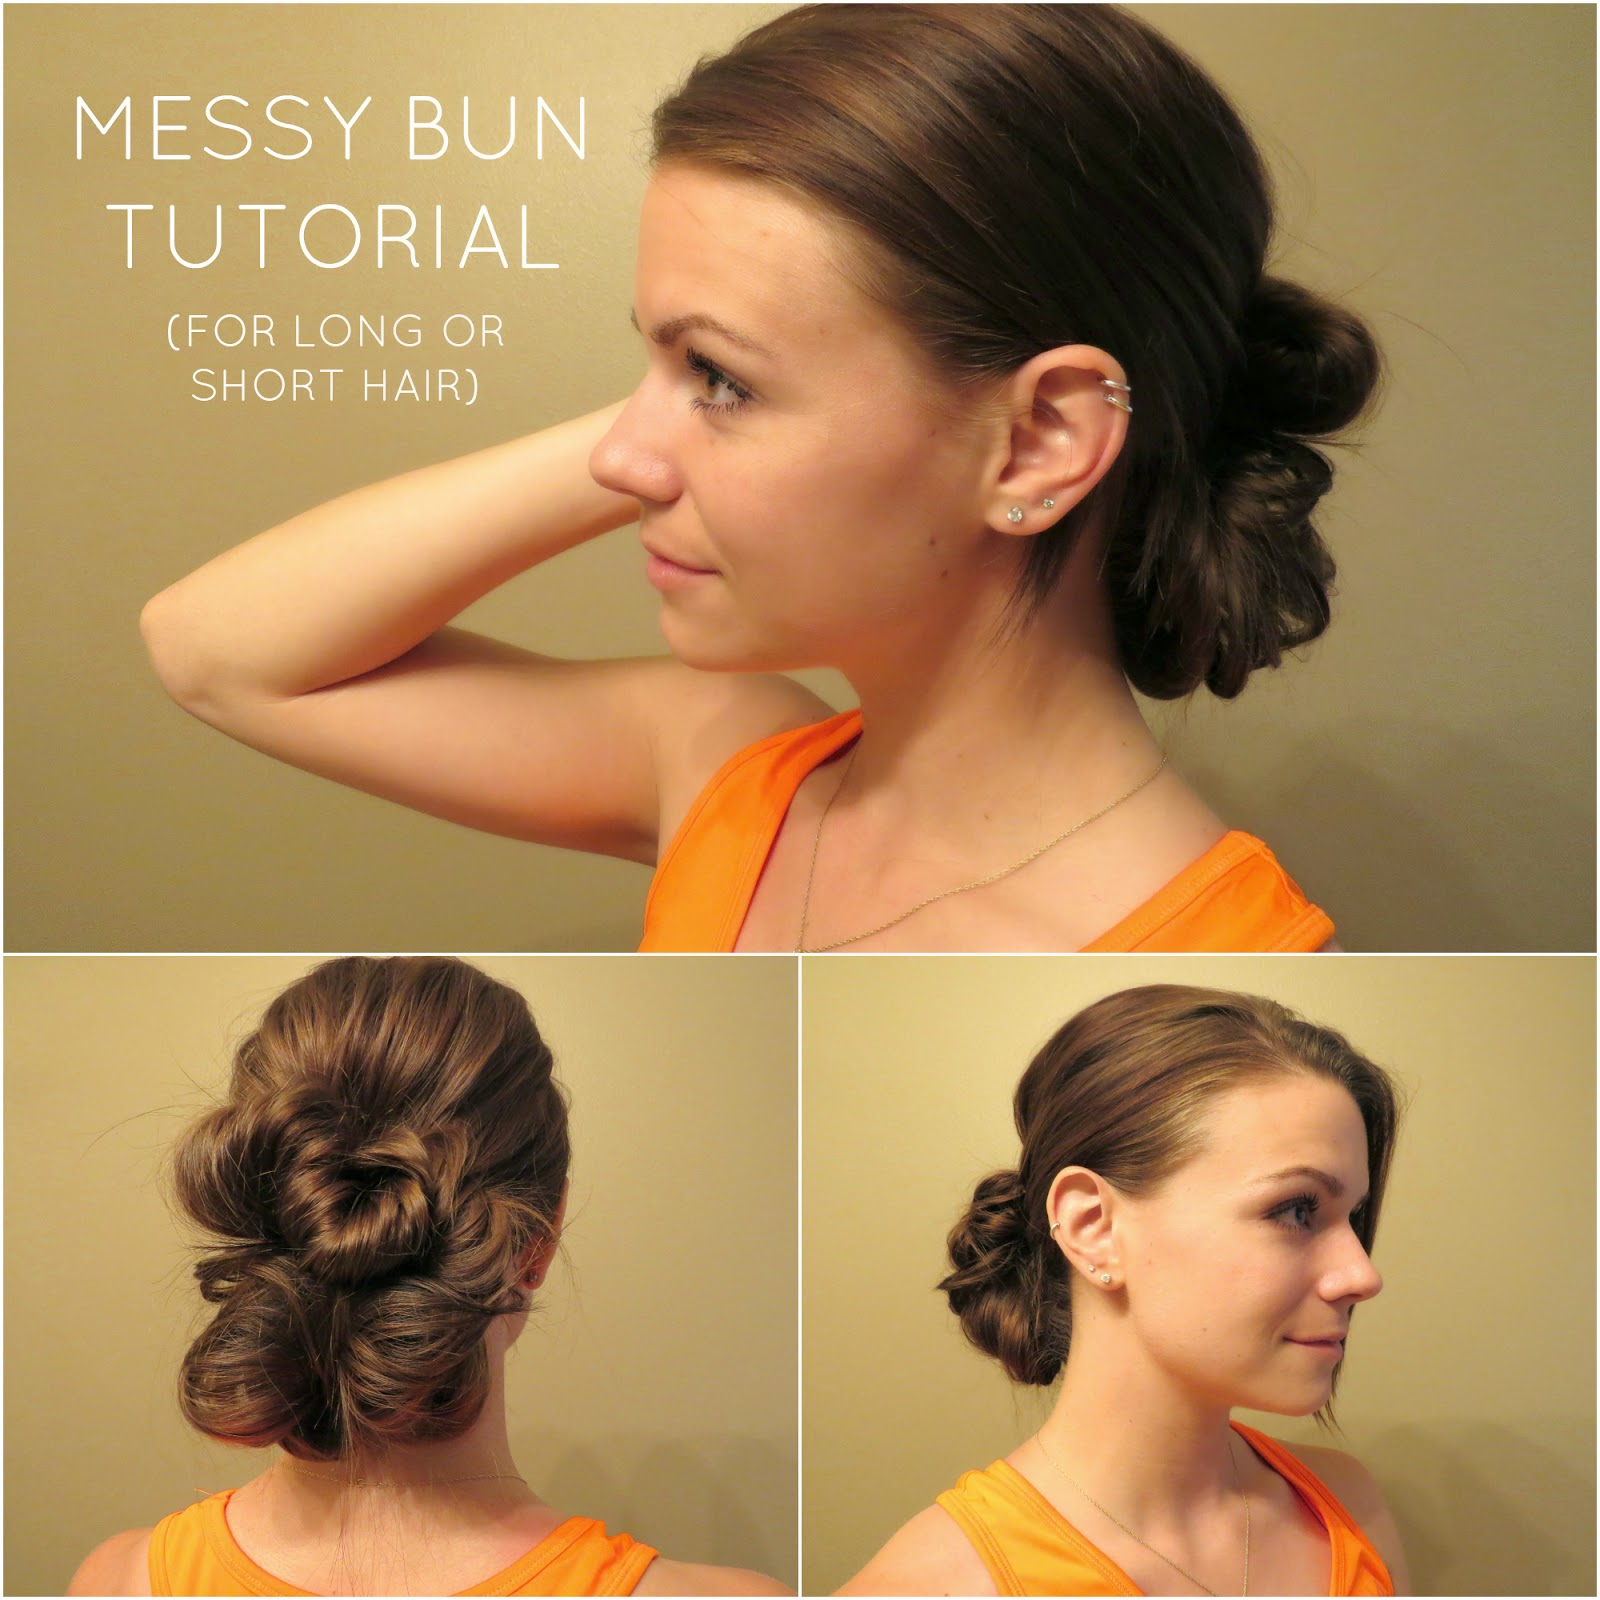 messy bun tutorial for long or short hair, hair tutorial, low bun tutorial